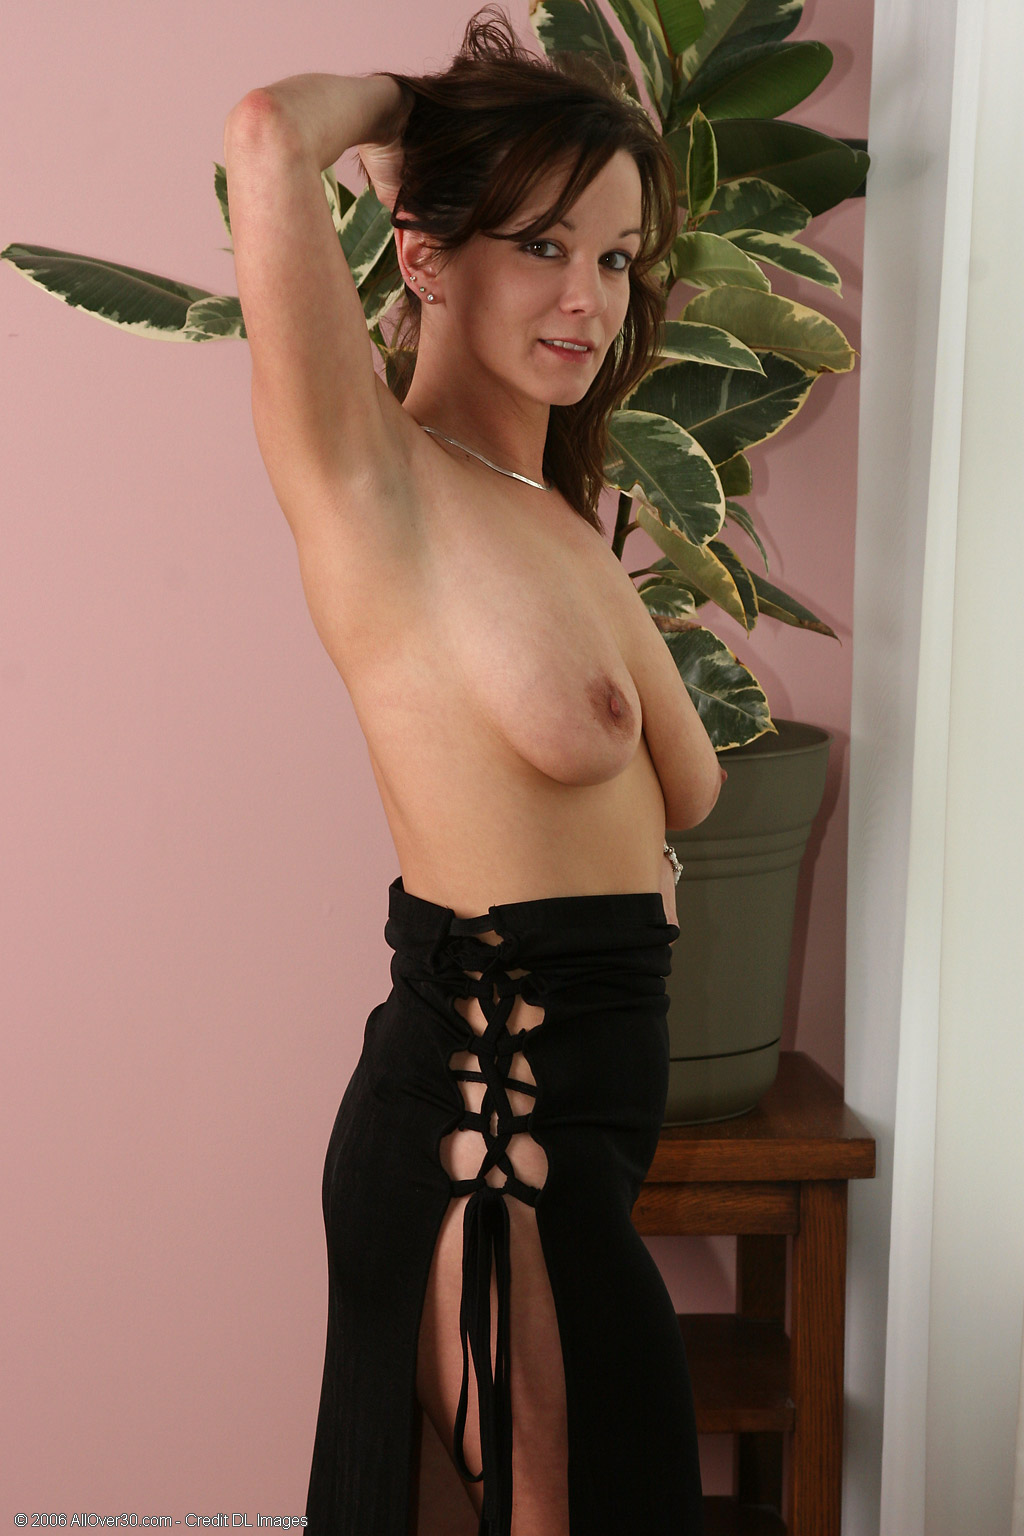 allover30free - presenting samantha - high quality mature and